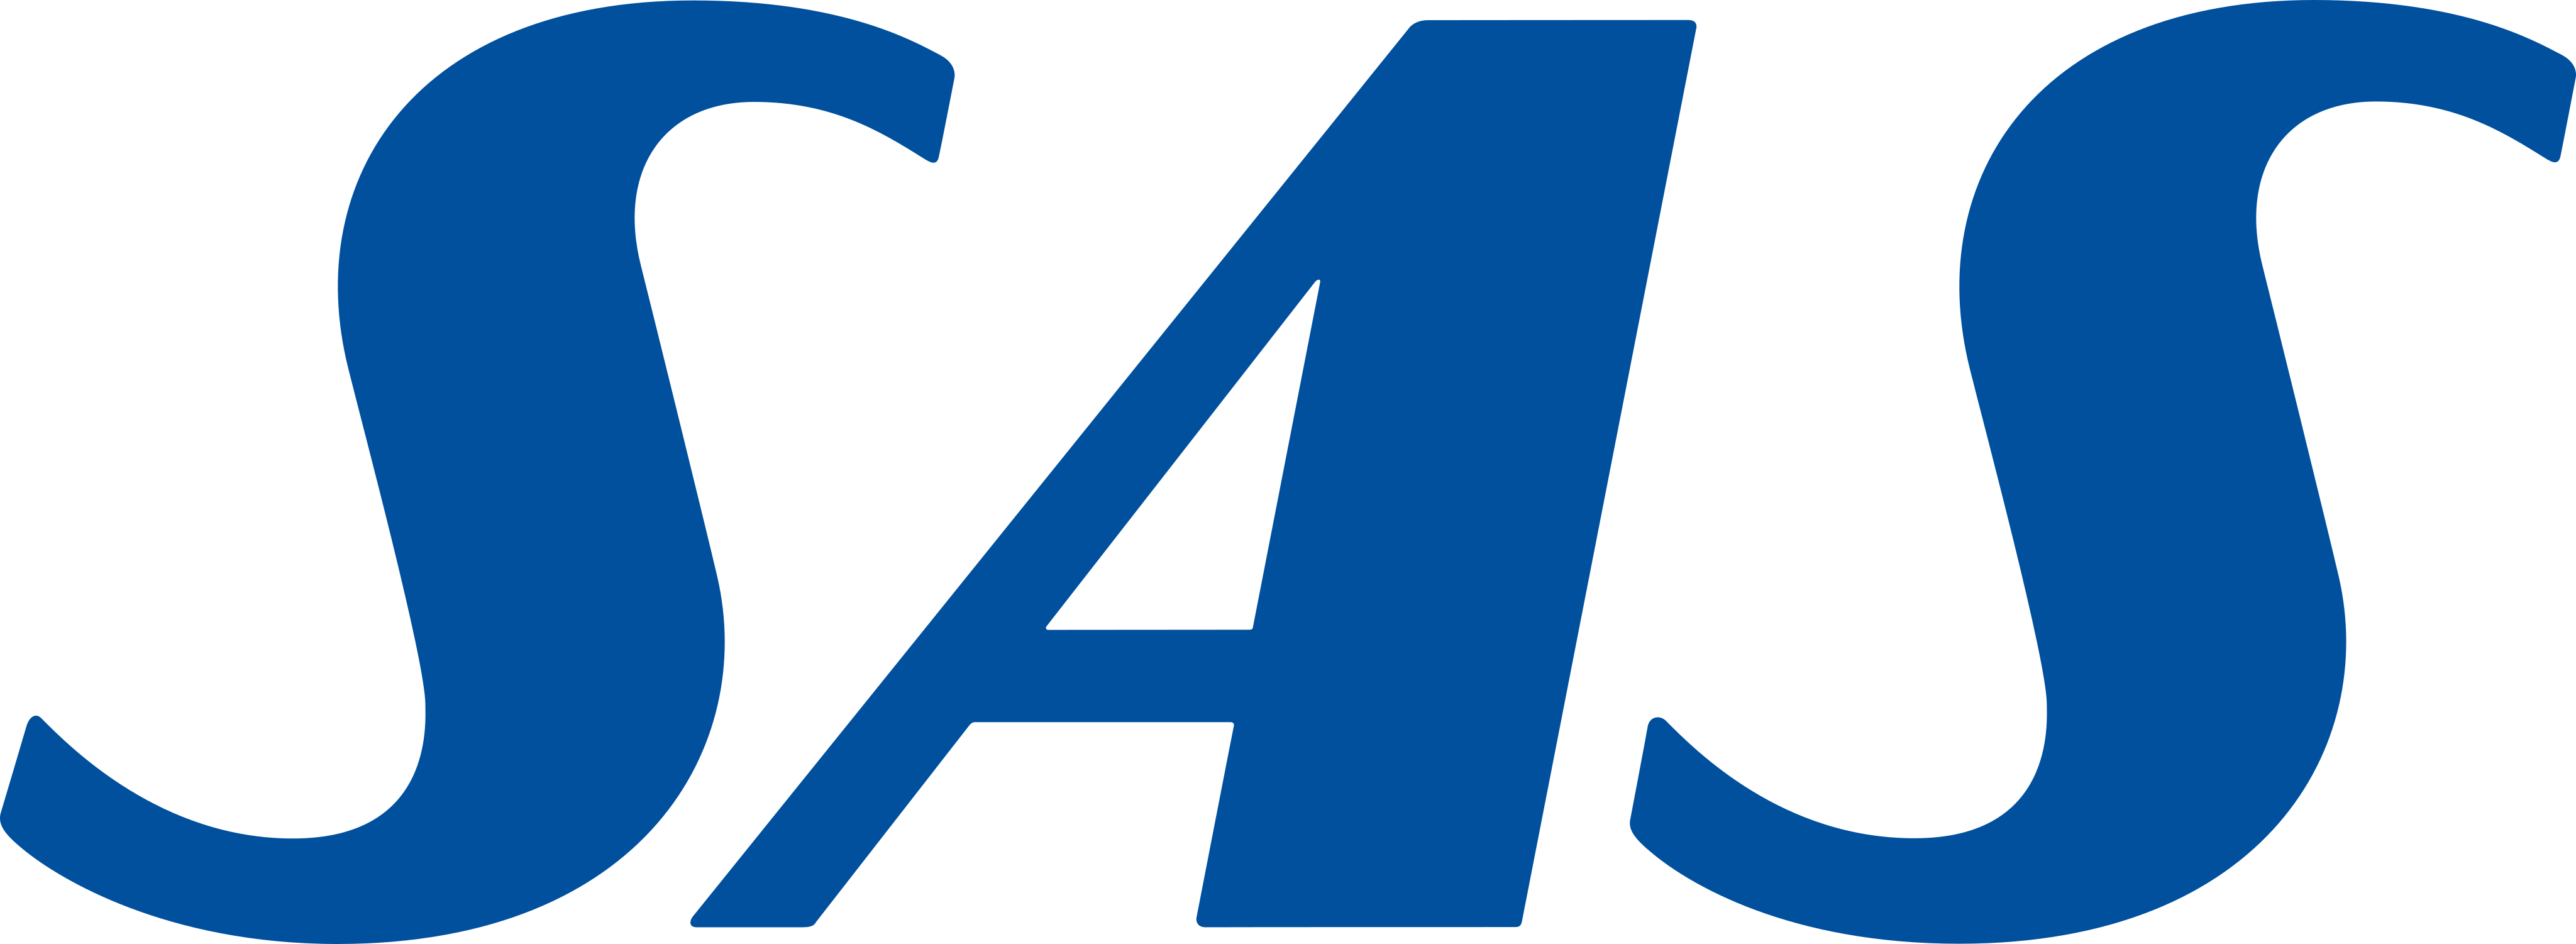 SAS Airlines Logo.